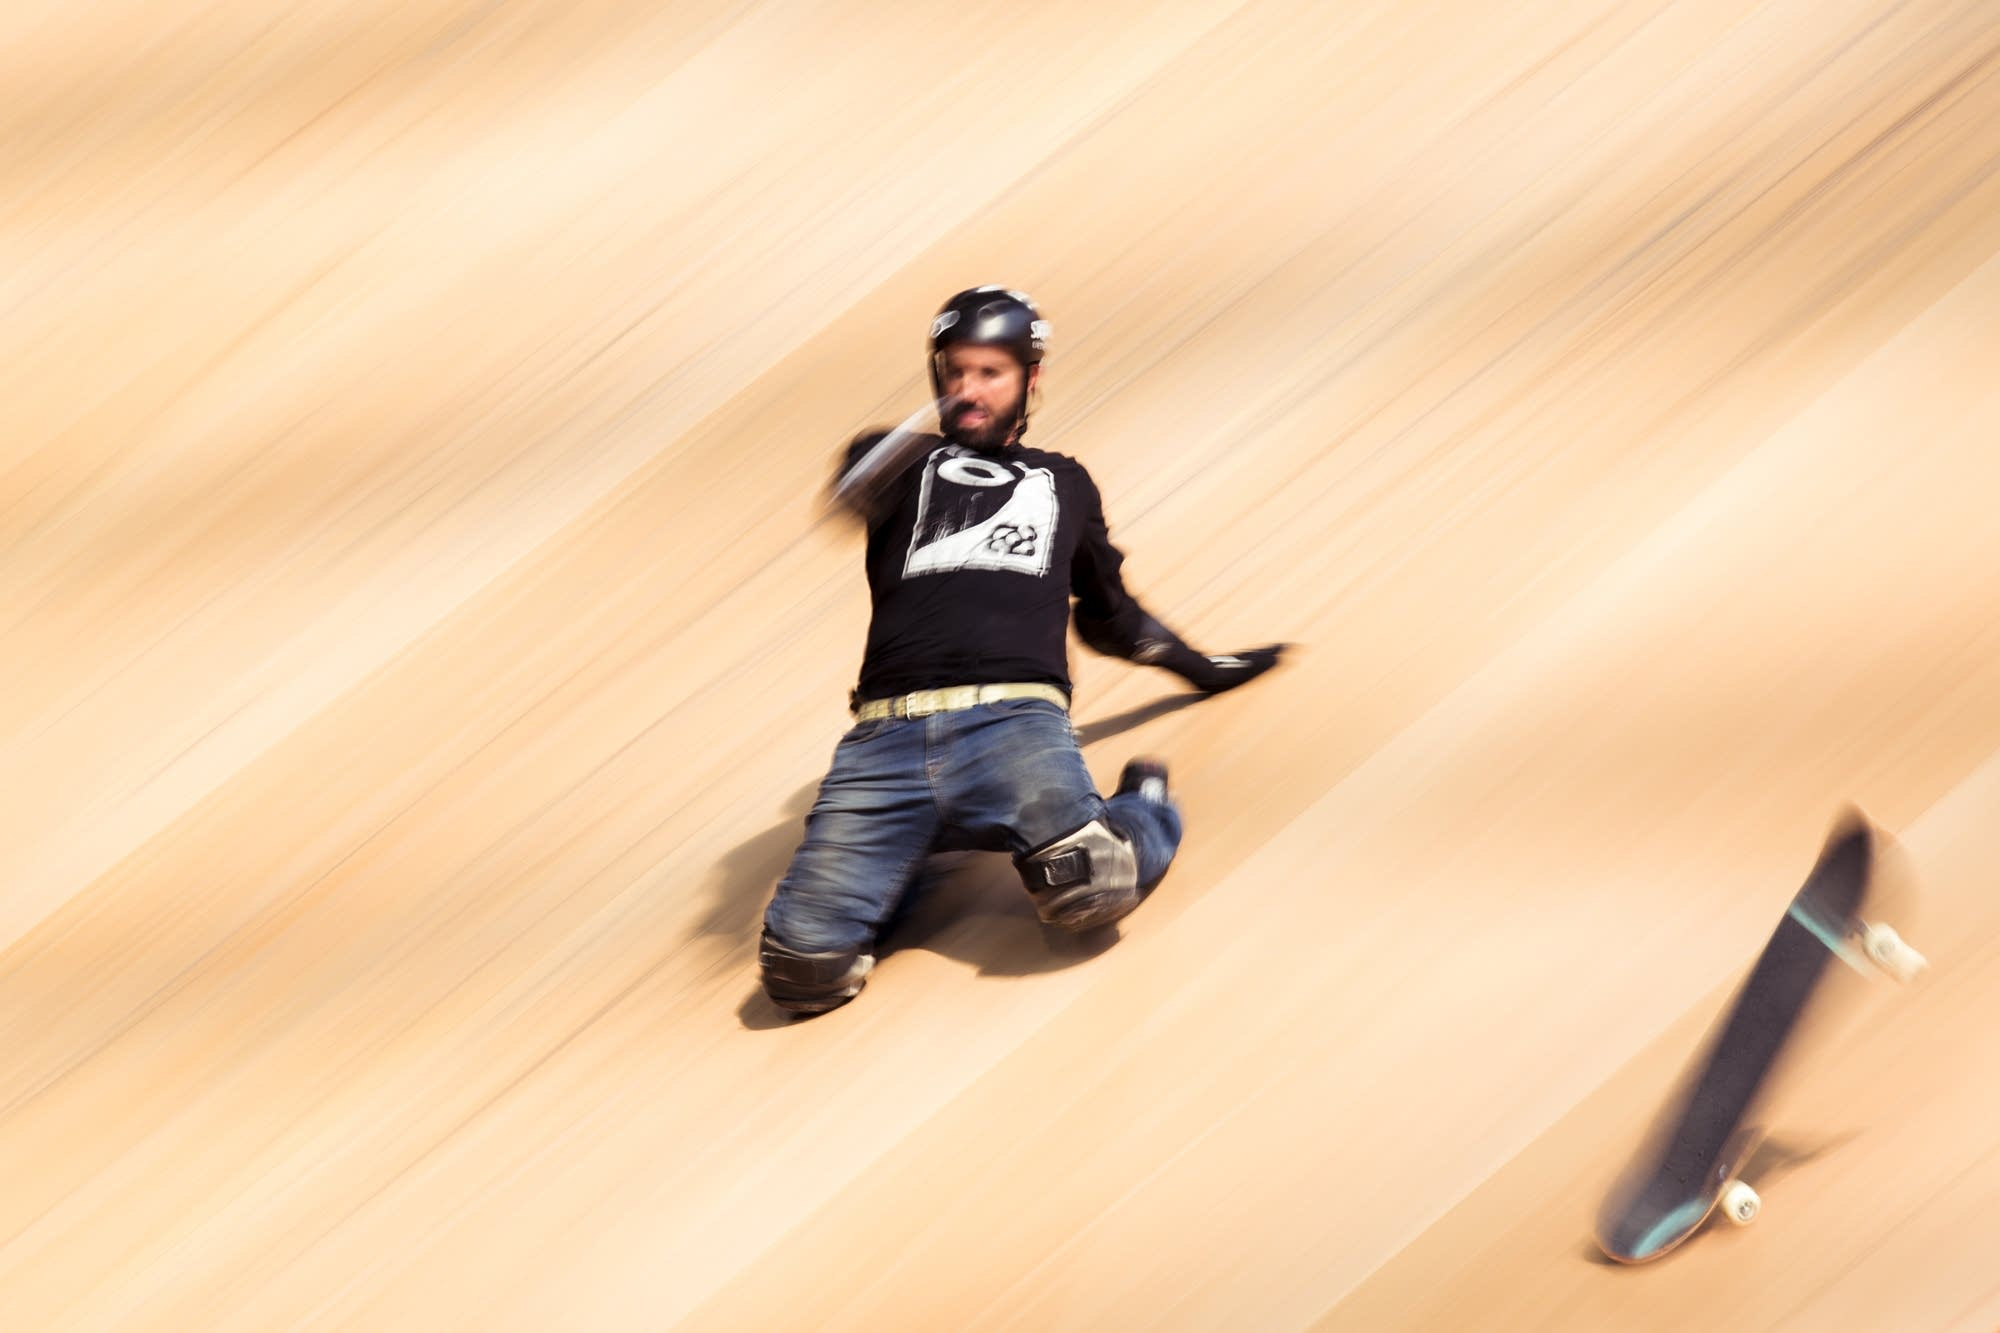 X Games legend Bob Burnquist slides down the Mega Ramp on his knees.